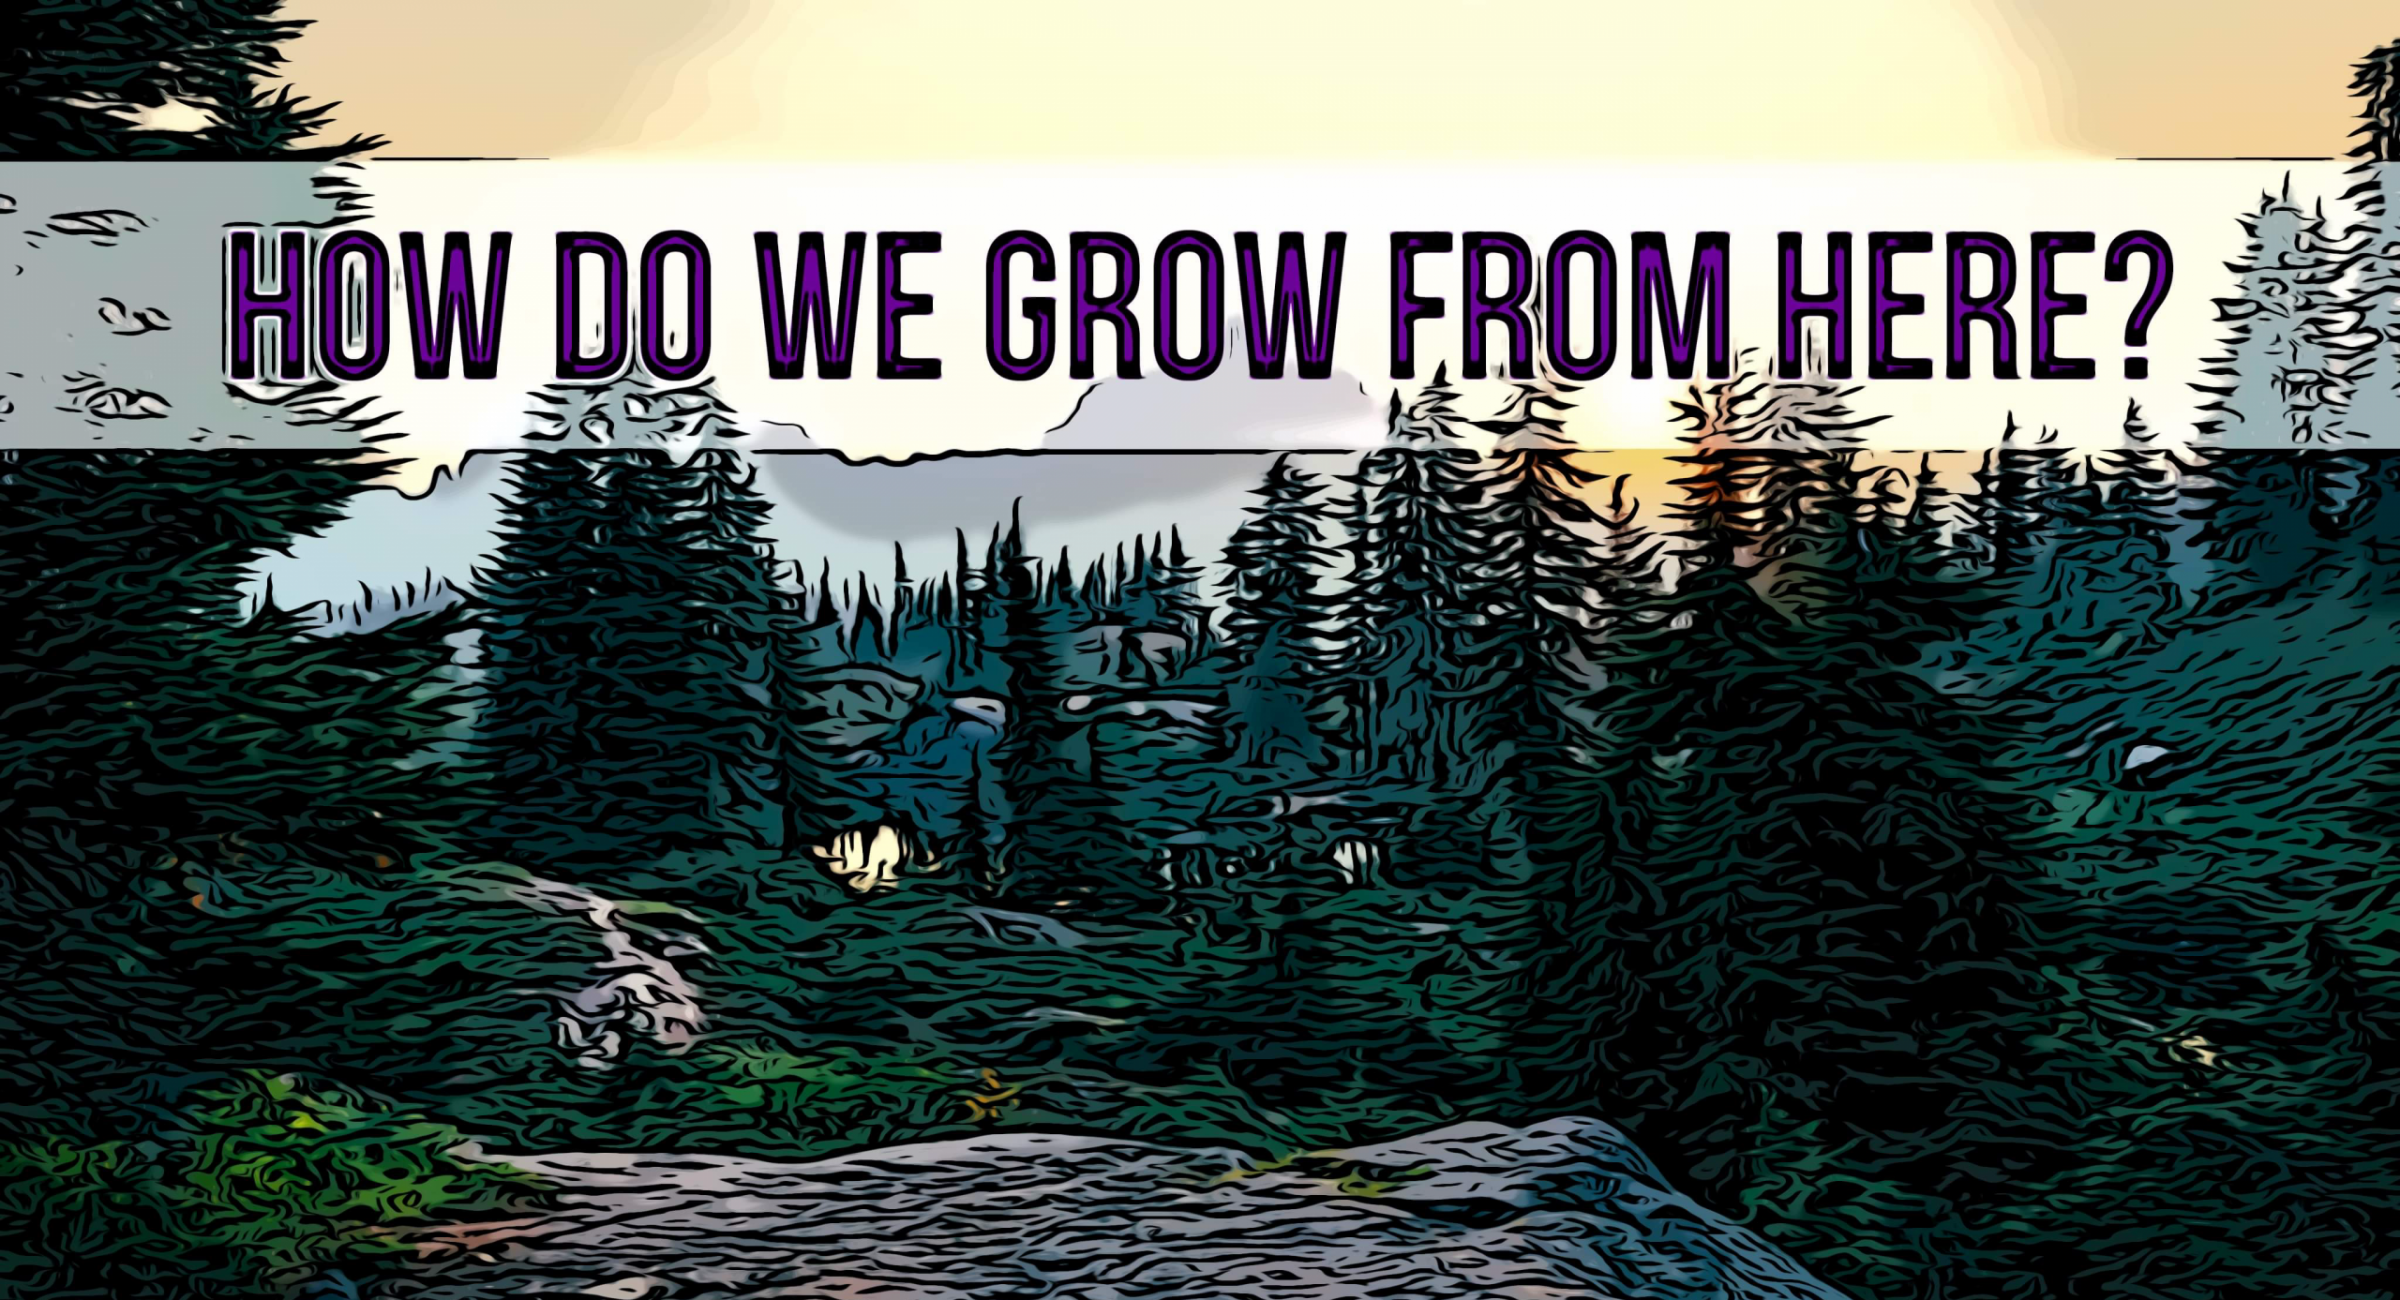 How Do We Grow From Here?